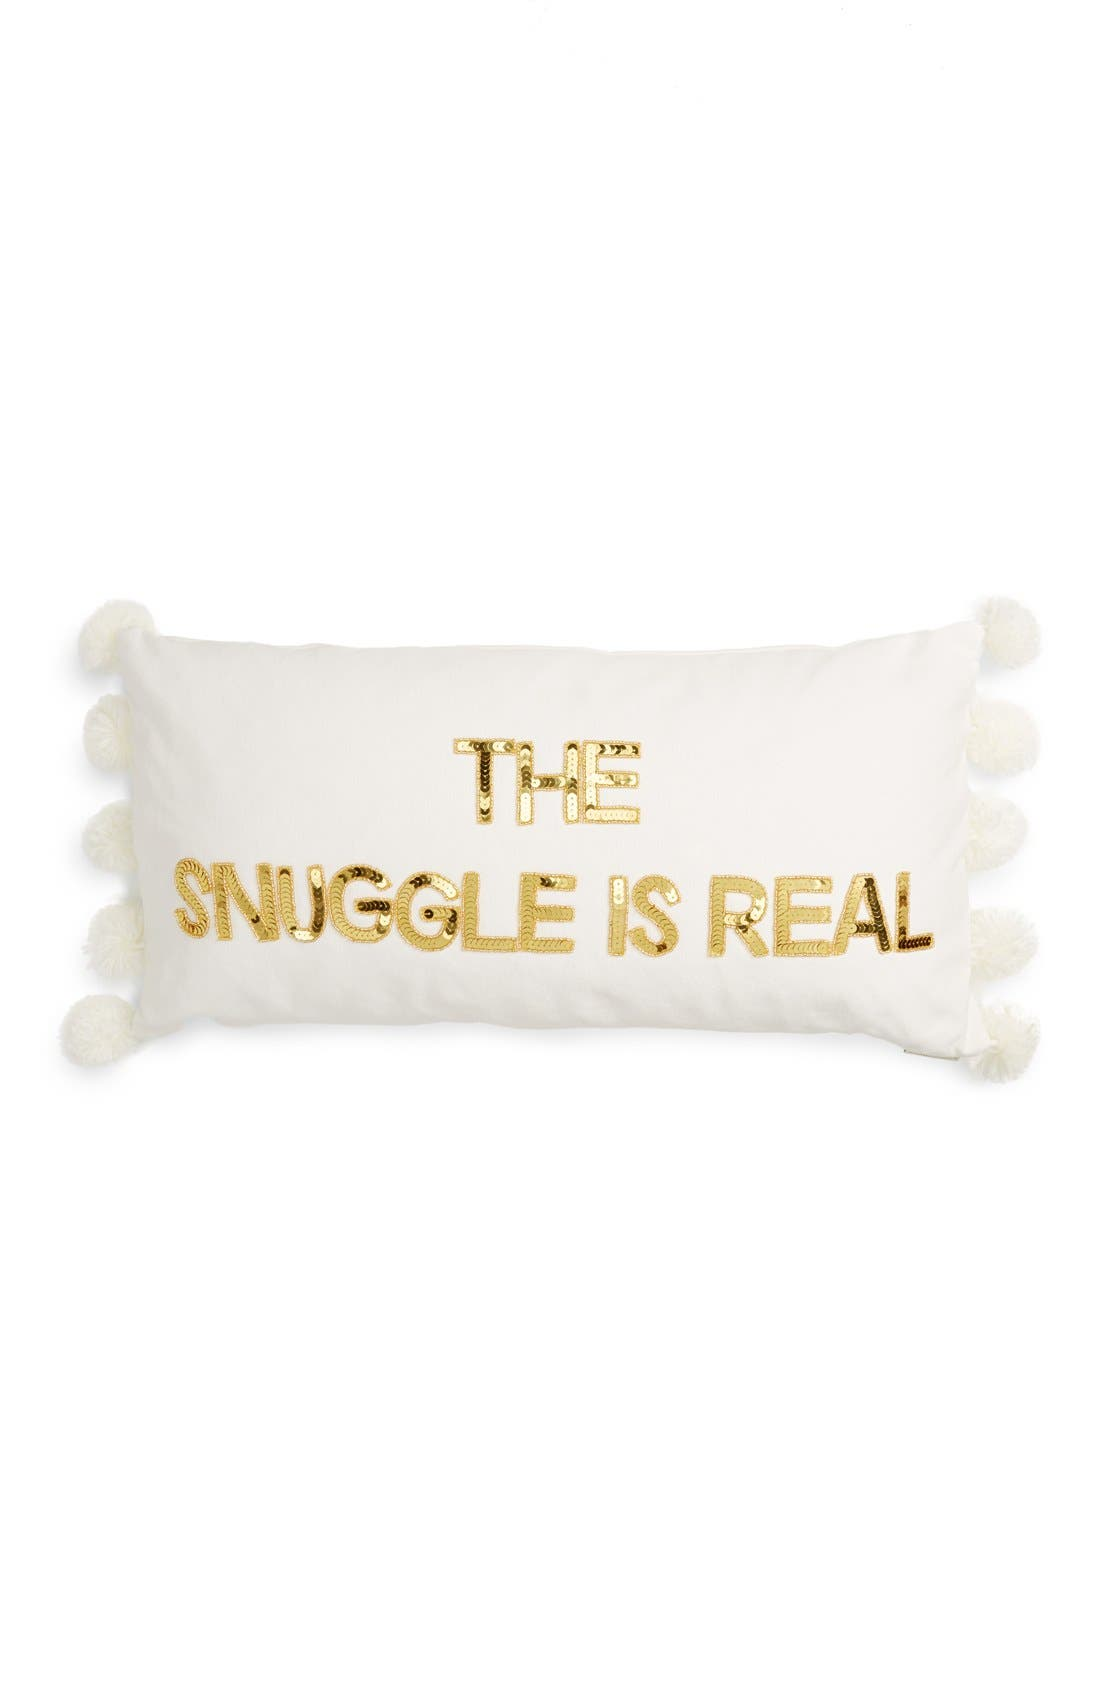 Main Image - Bow & Drape Snuggle is Real Acccent Pillow